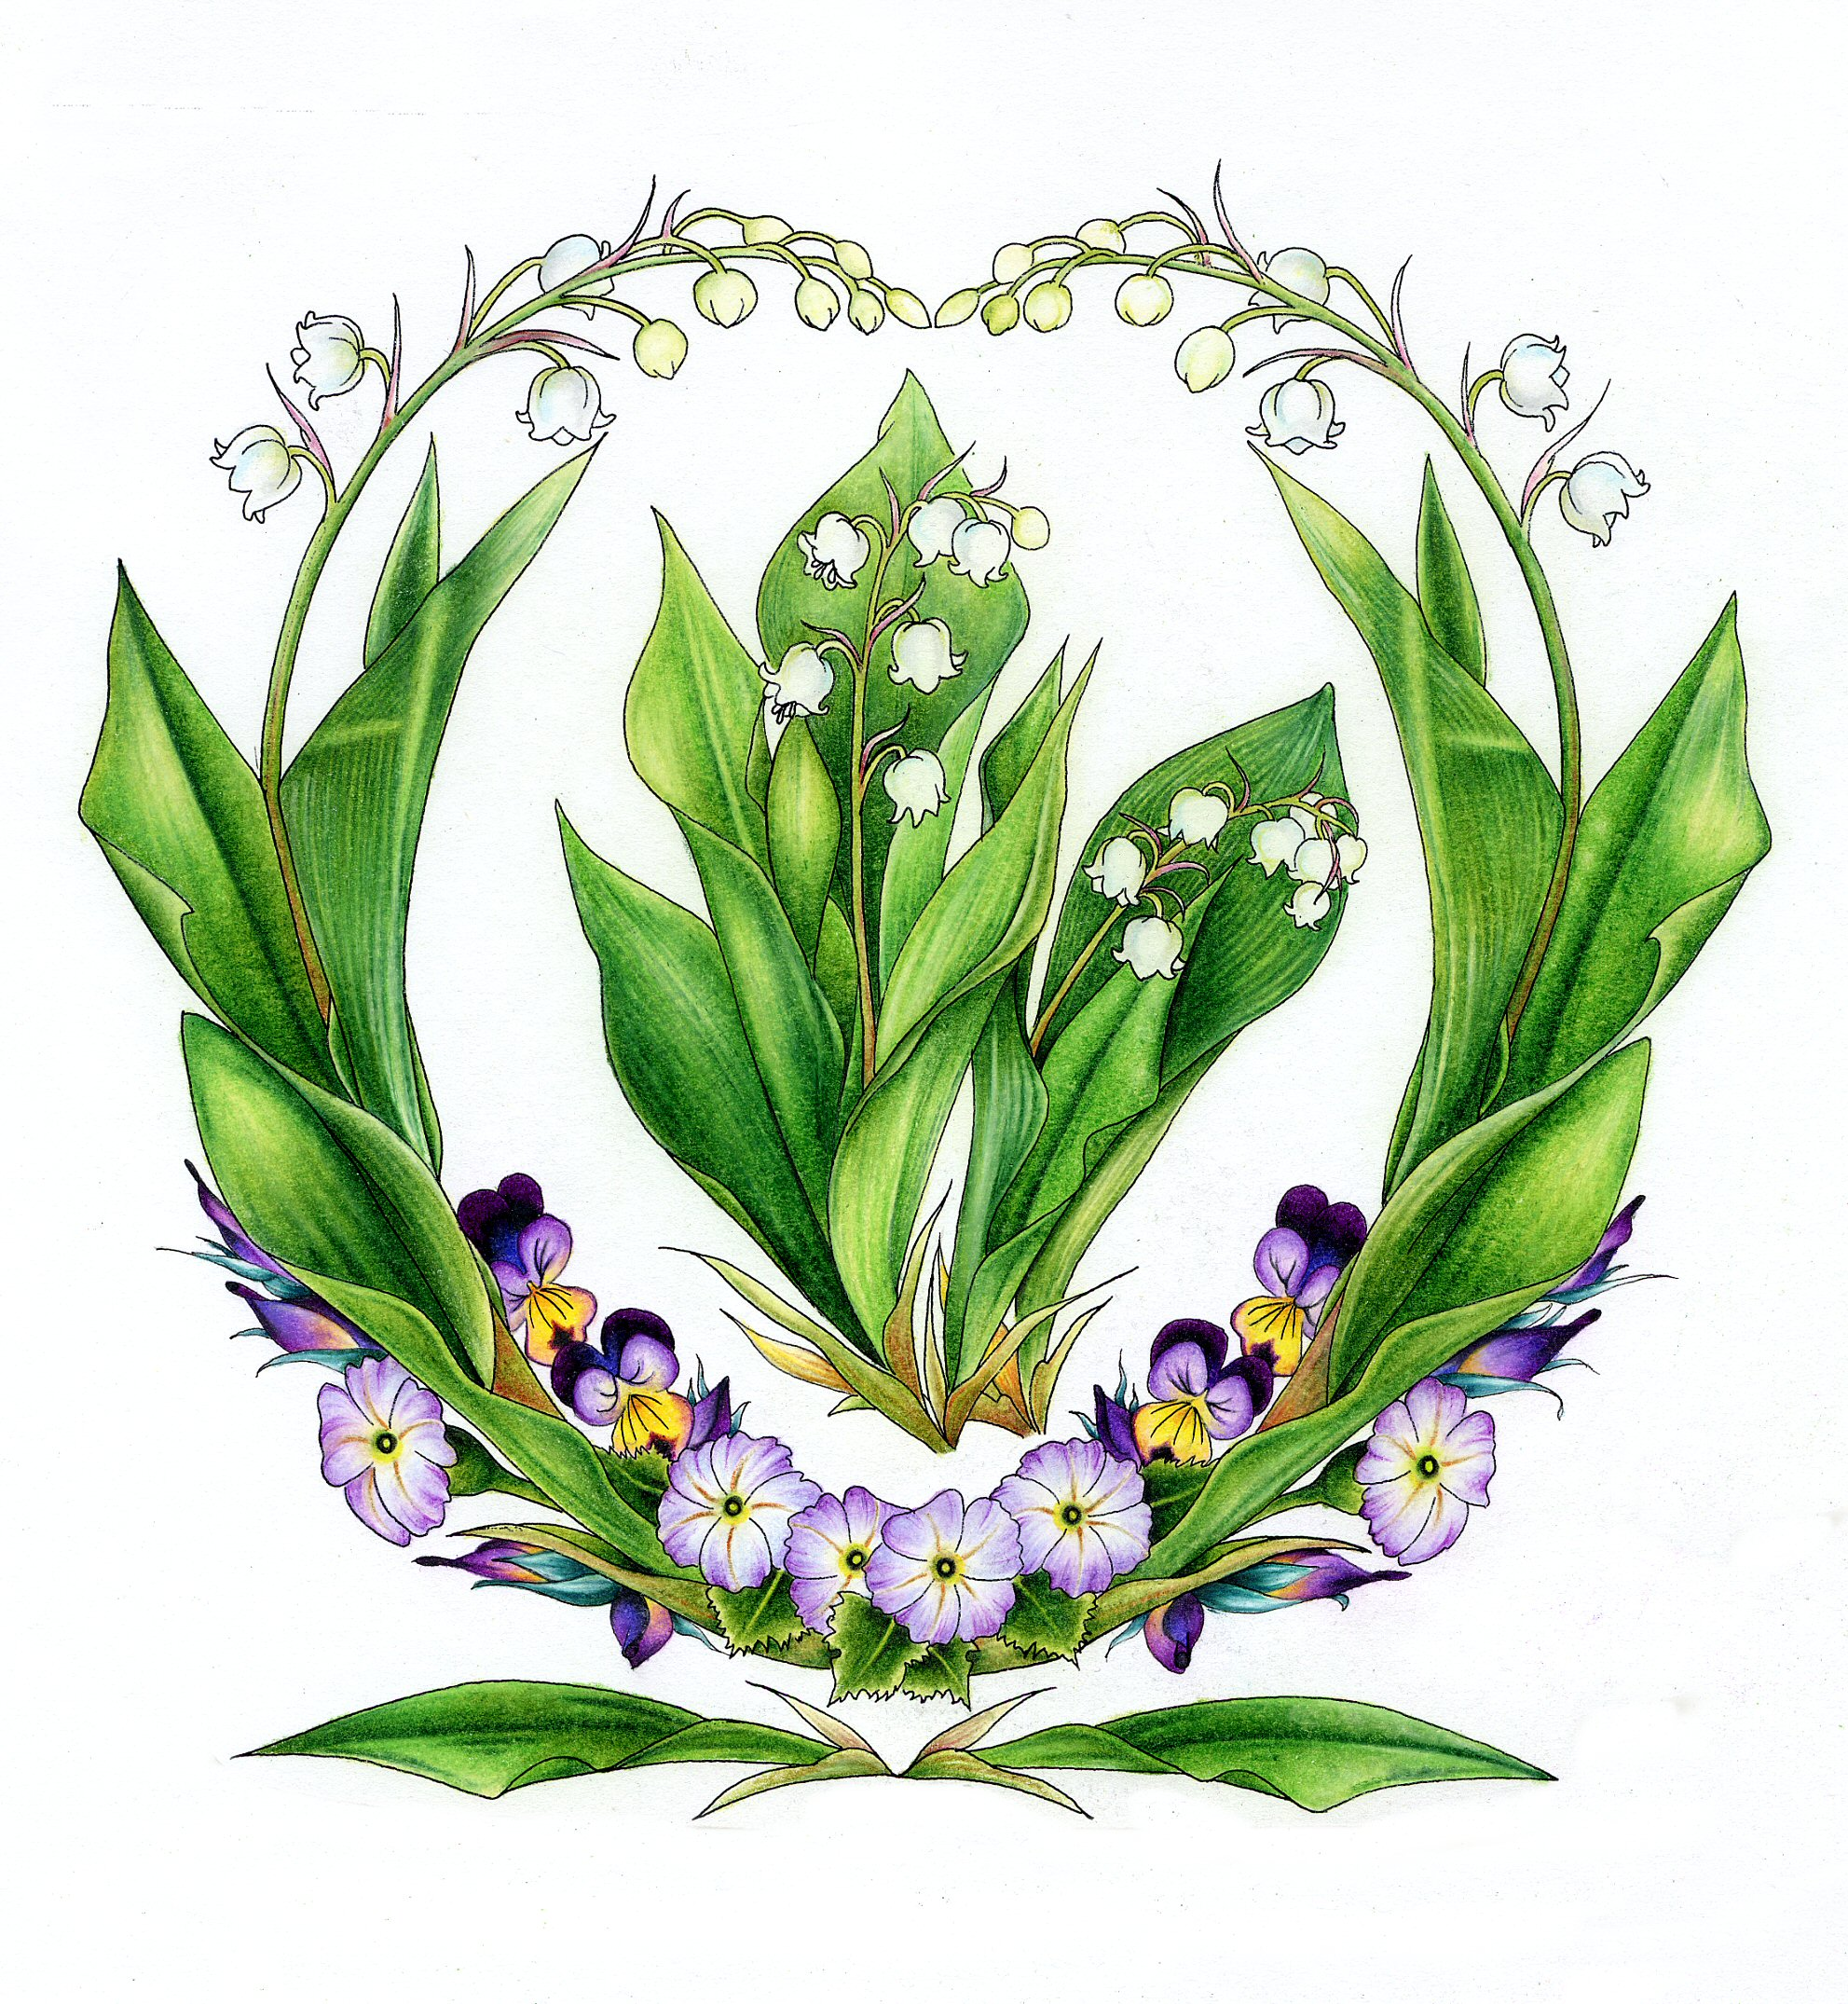 Lily Of The Valley clipart meaning » Fantasy – Fairy Aimee